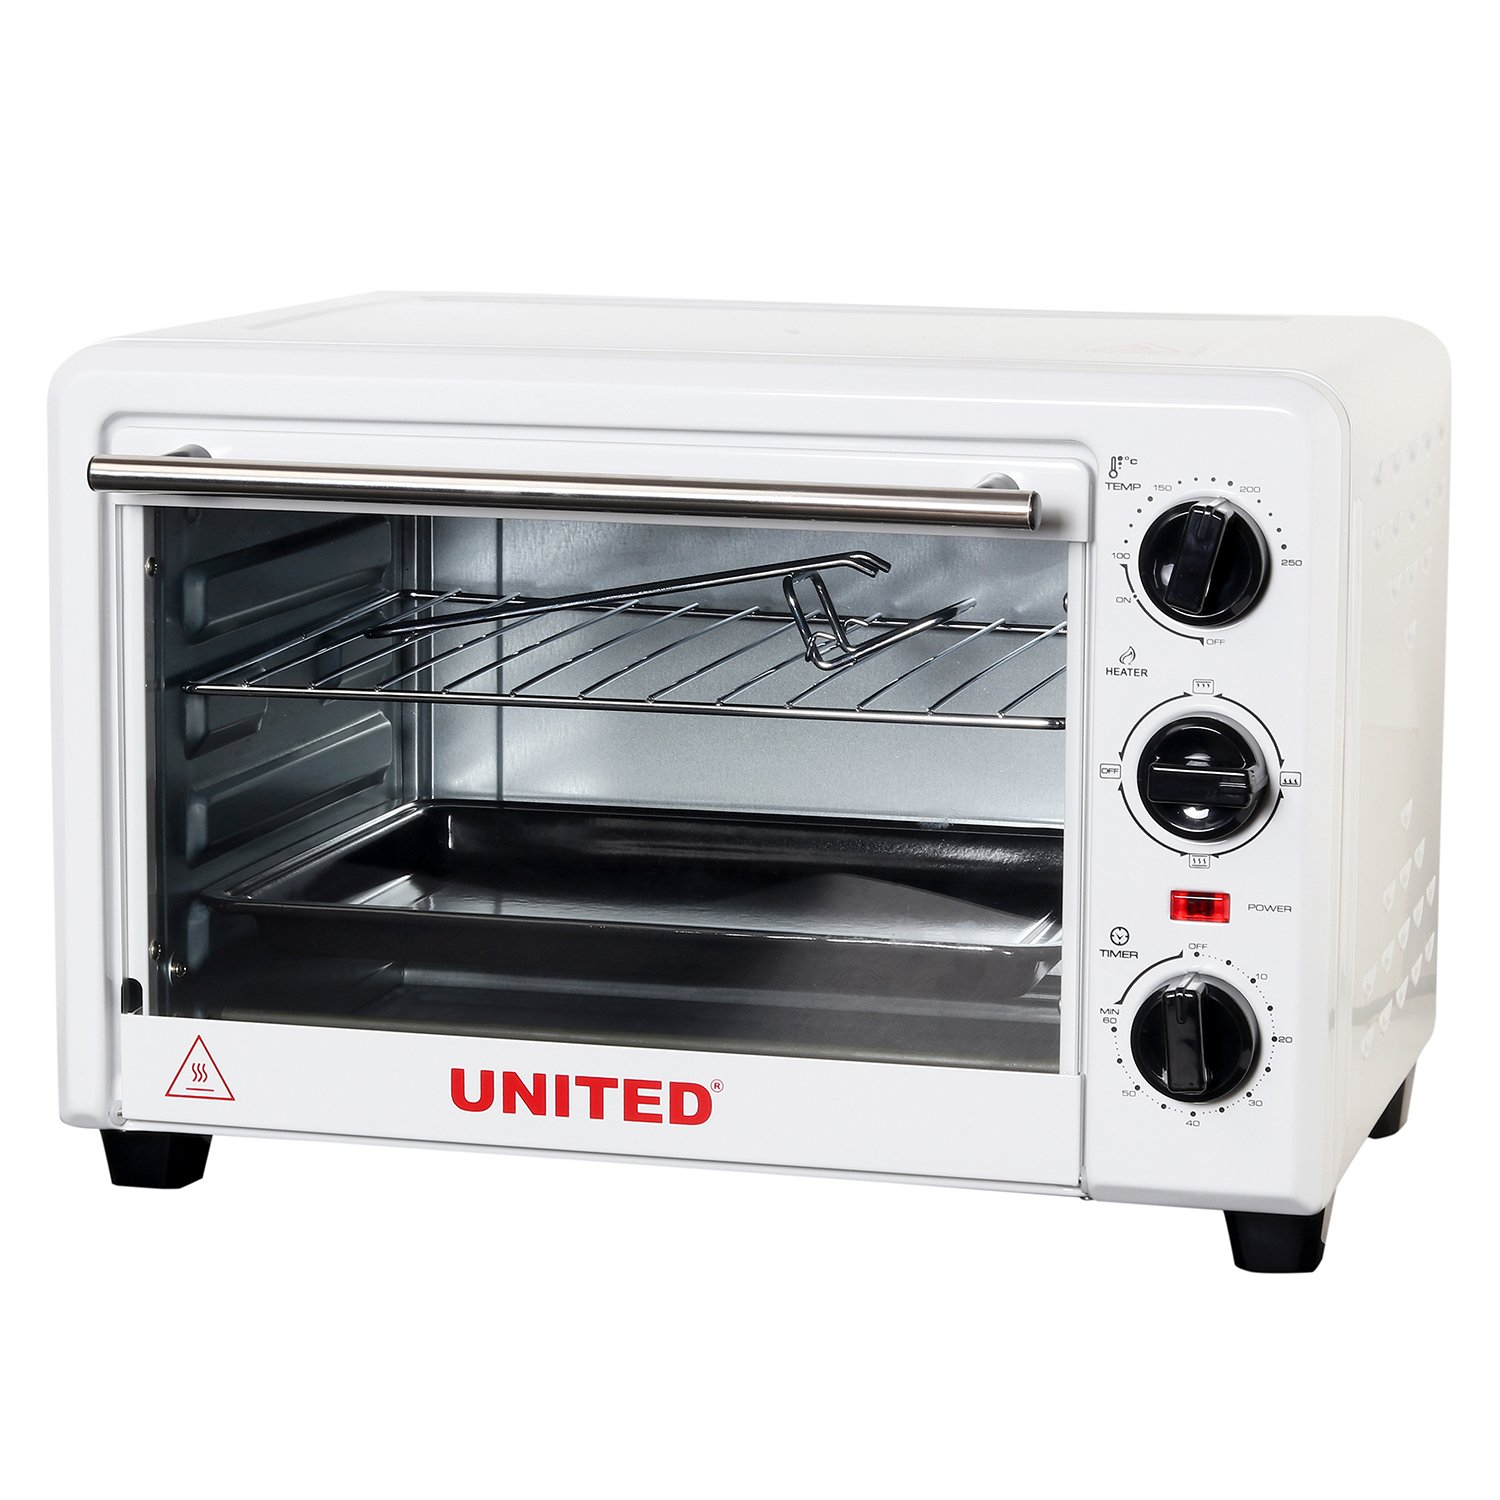 United UT-118 18L Oven Toaster Grill